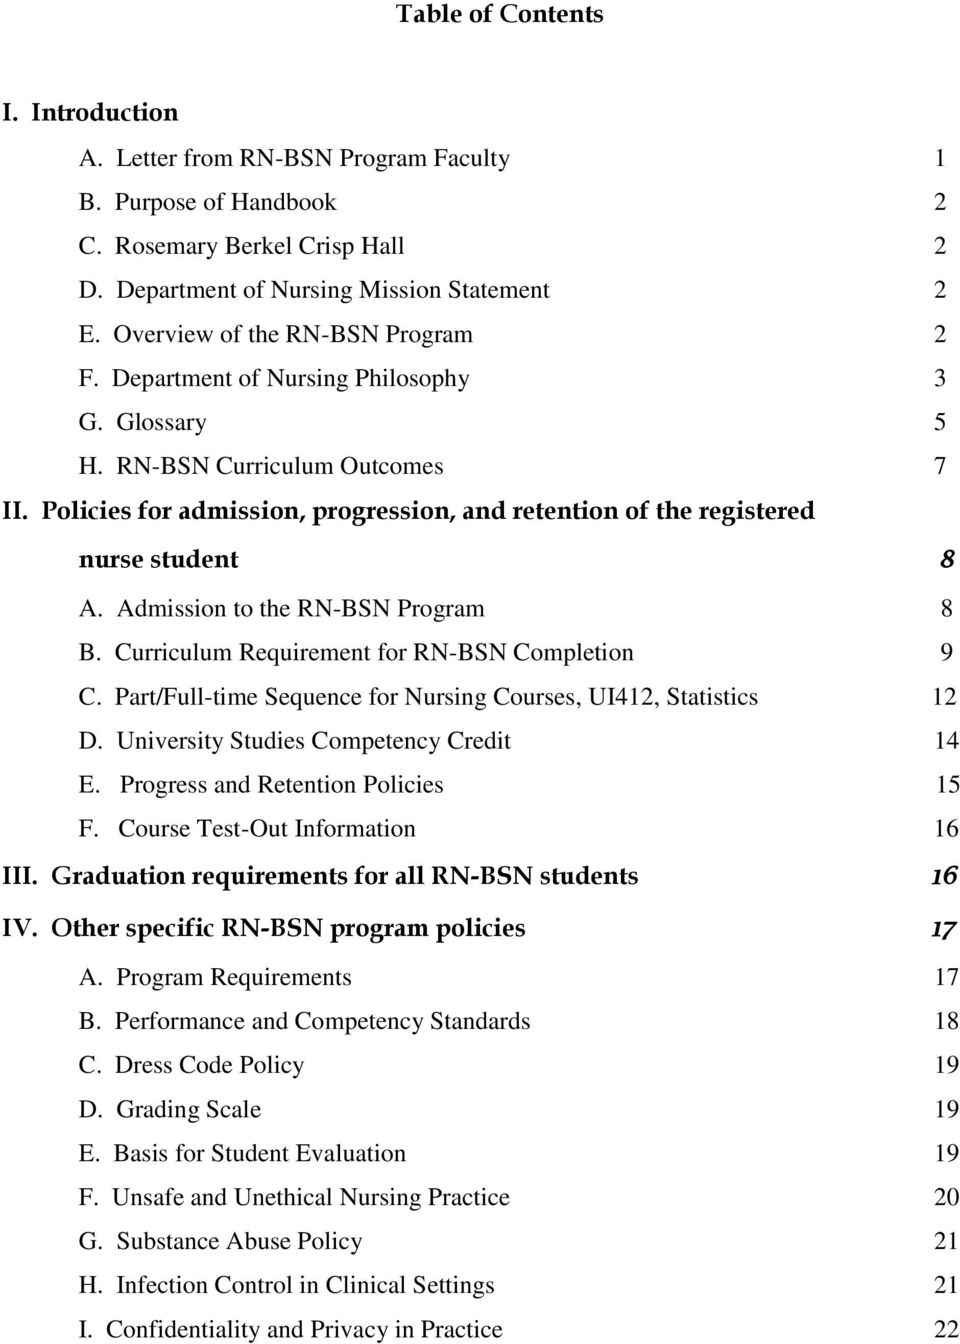 Policies for admission, progression, and retention of the registered nurse student 8 A. Admission to the RN-BSN Program 8 B. Curriculum Requirement for RN-BSN Completion 9 C.